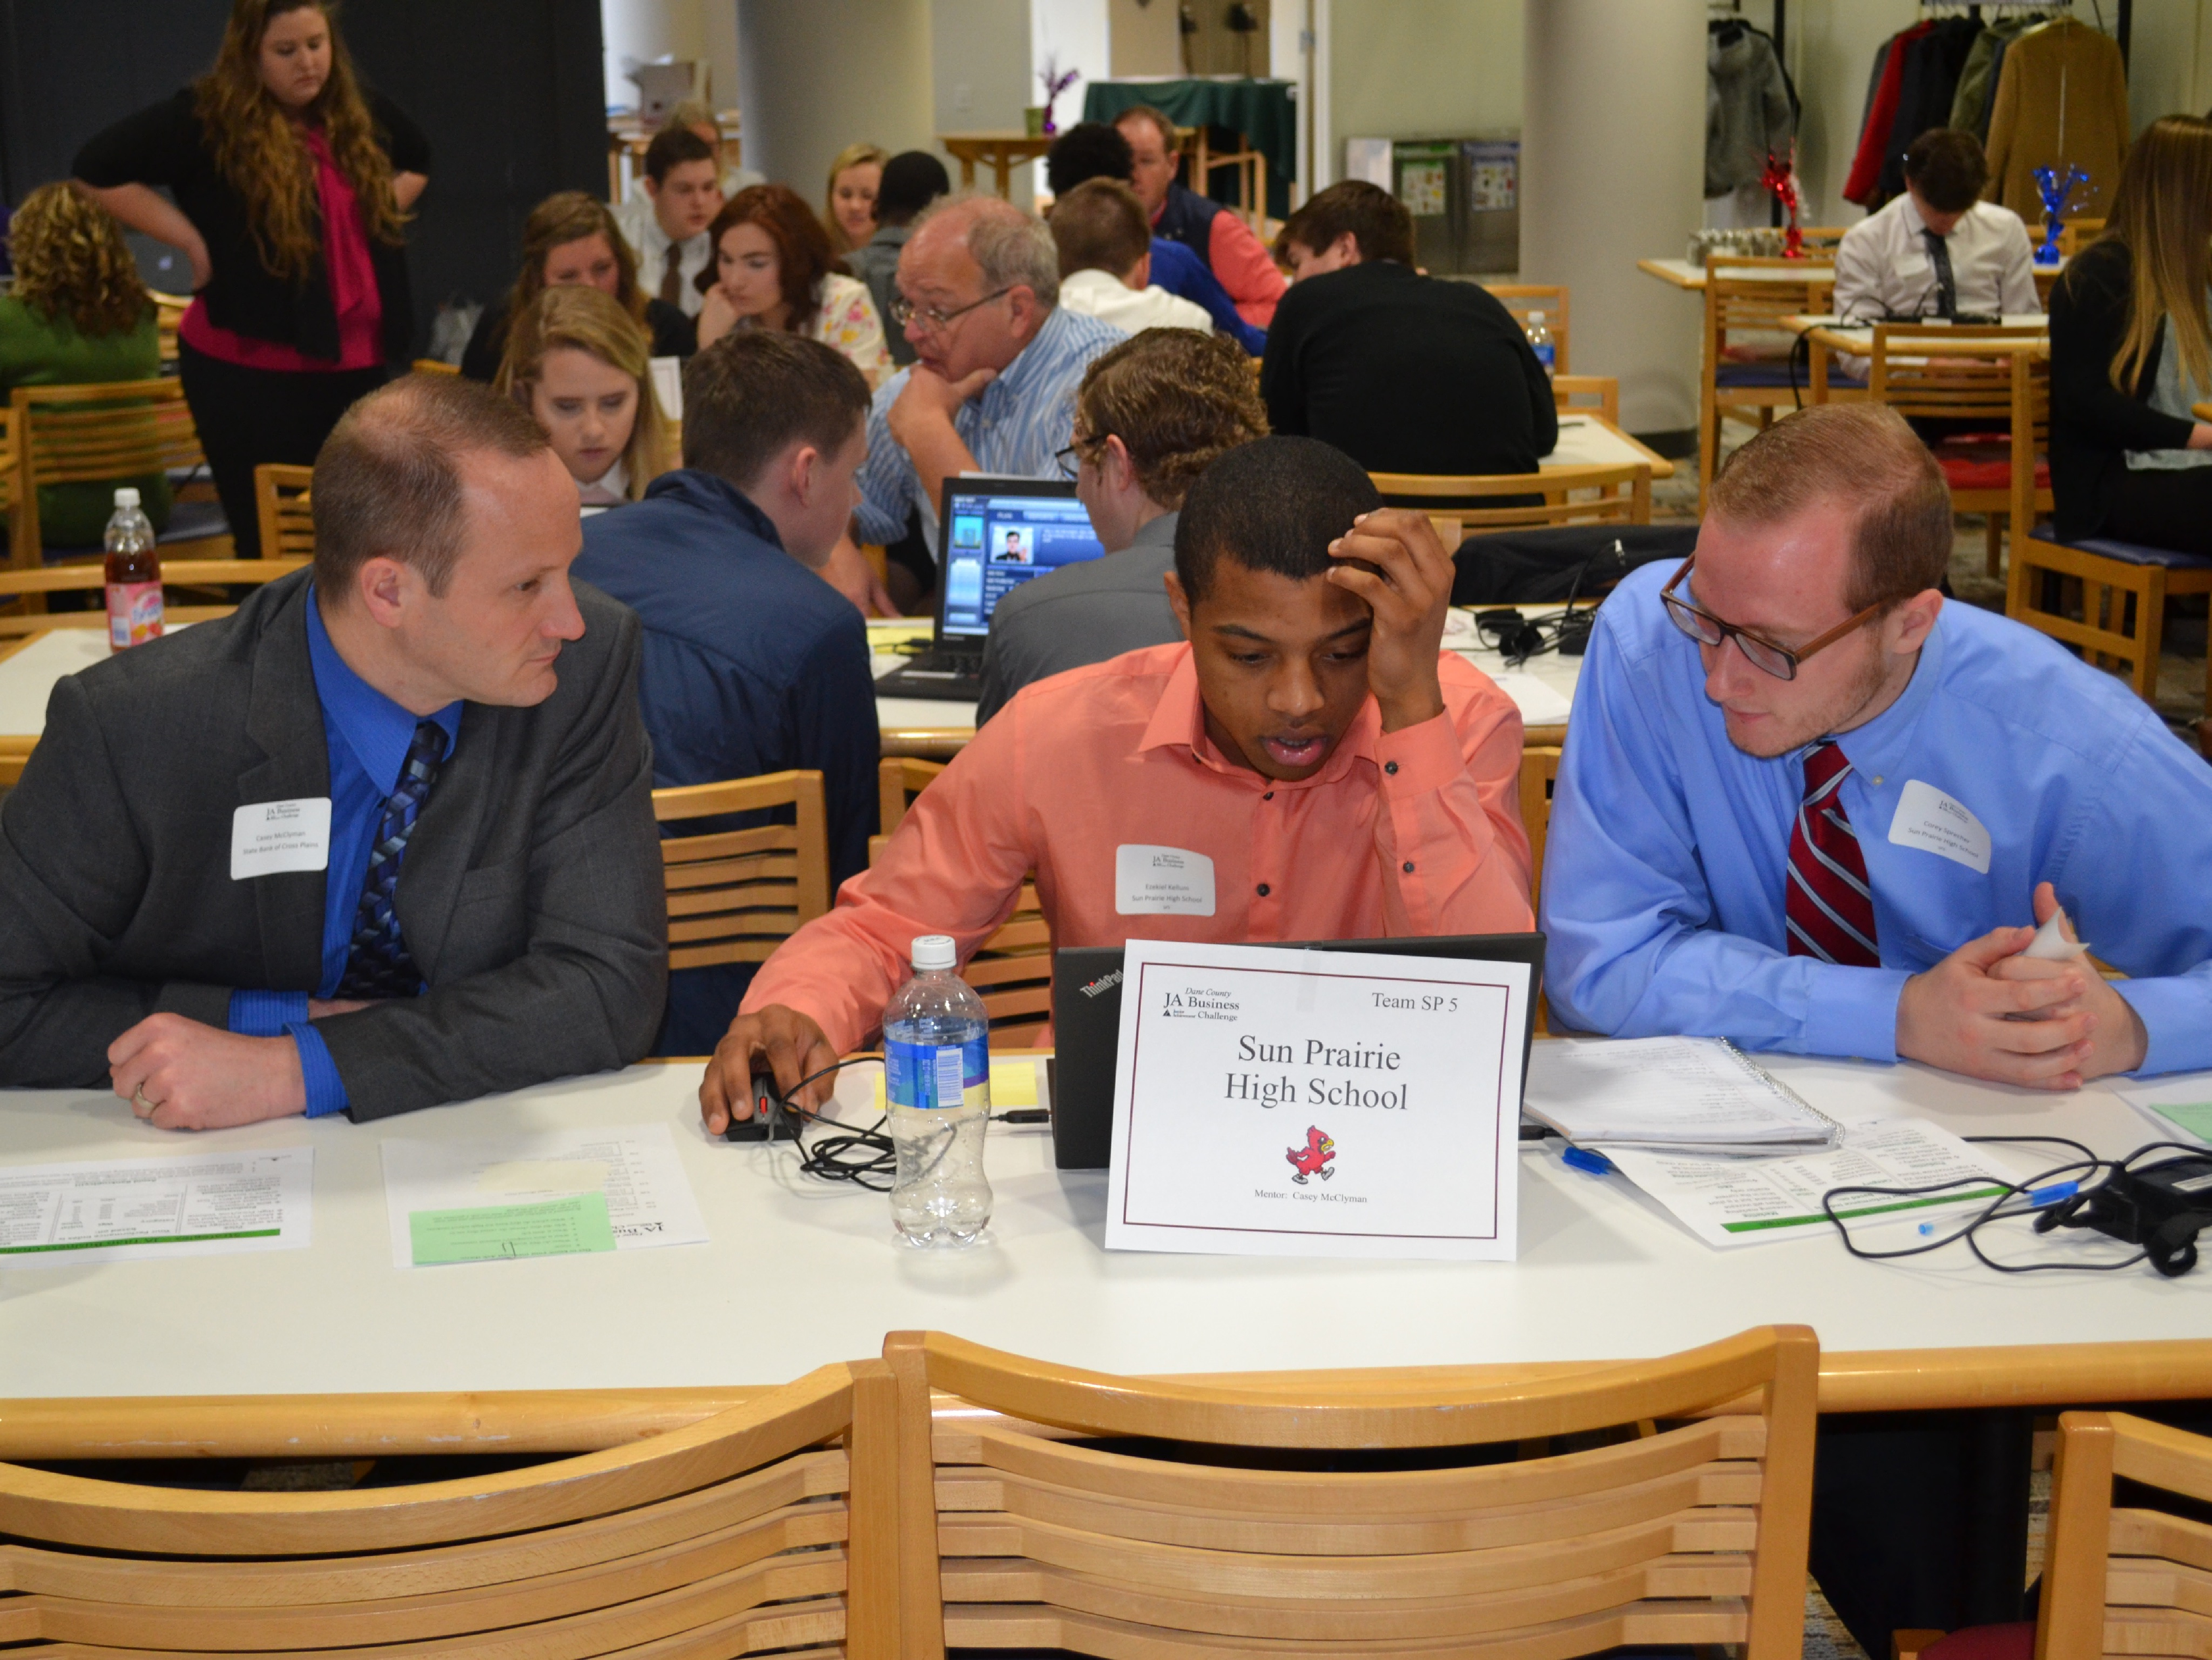 JA Business Challenge - South Central Region (Dane County Area & Rock County Area)